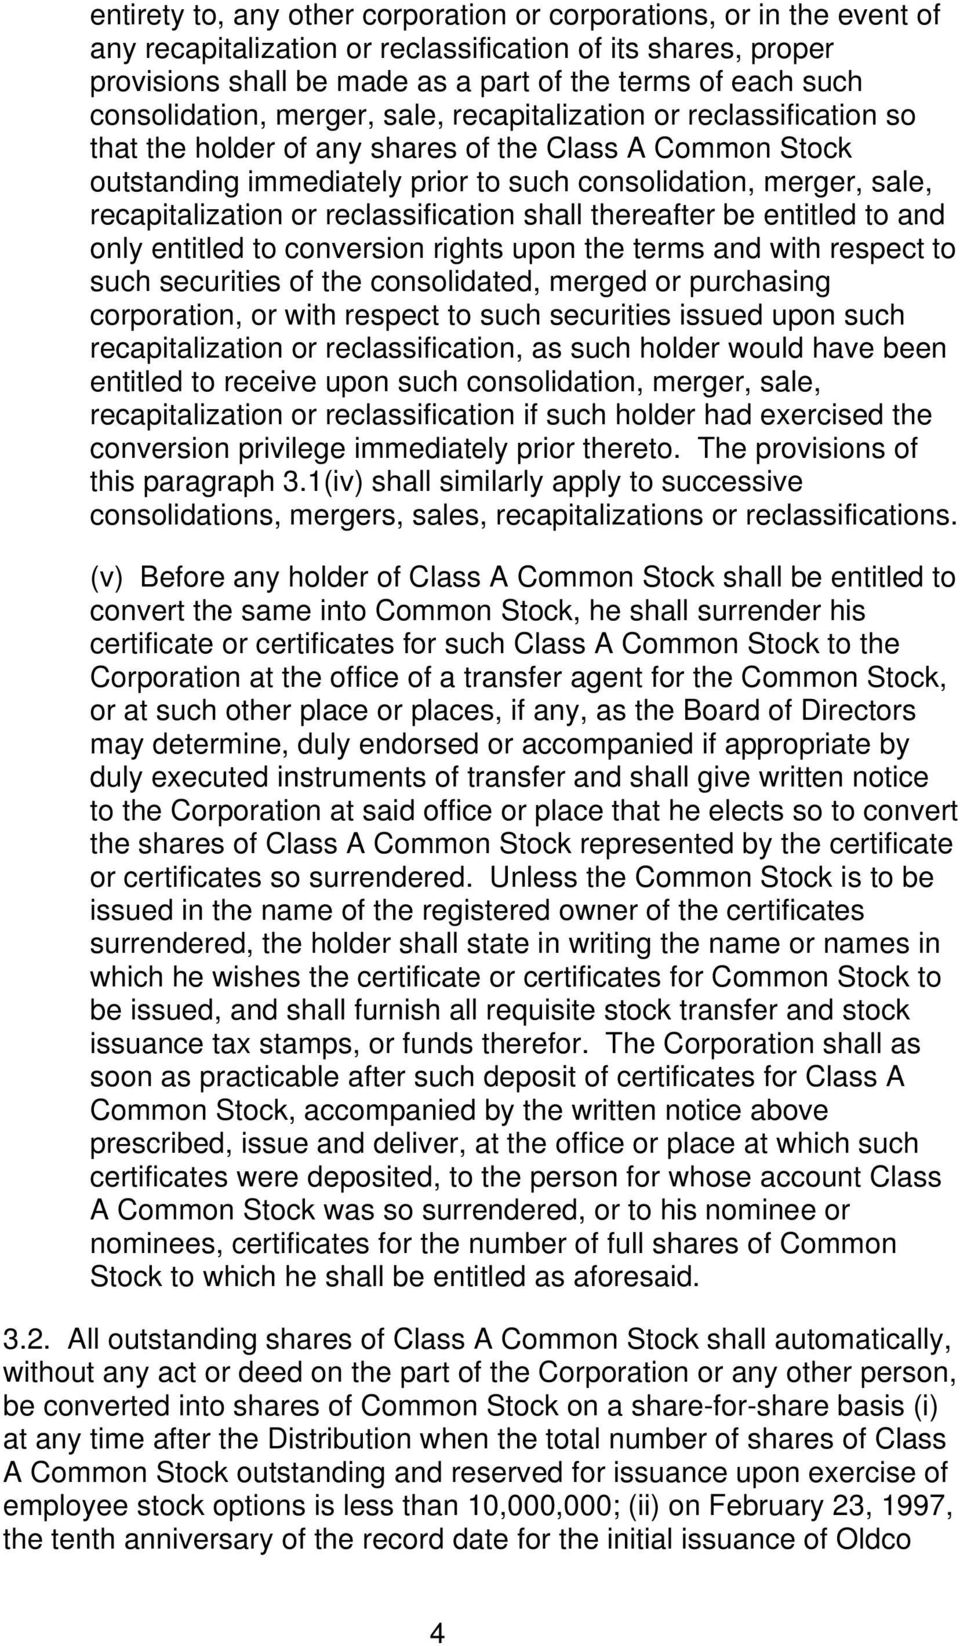 recapitalization or reclassification shall thereafter be entitled to and only entitled to conversion rights upon the terms and with respect to such securities of the consolidated, merged or